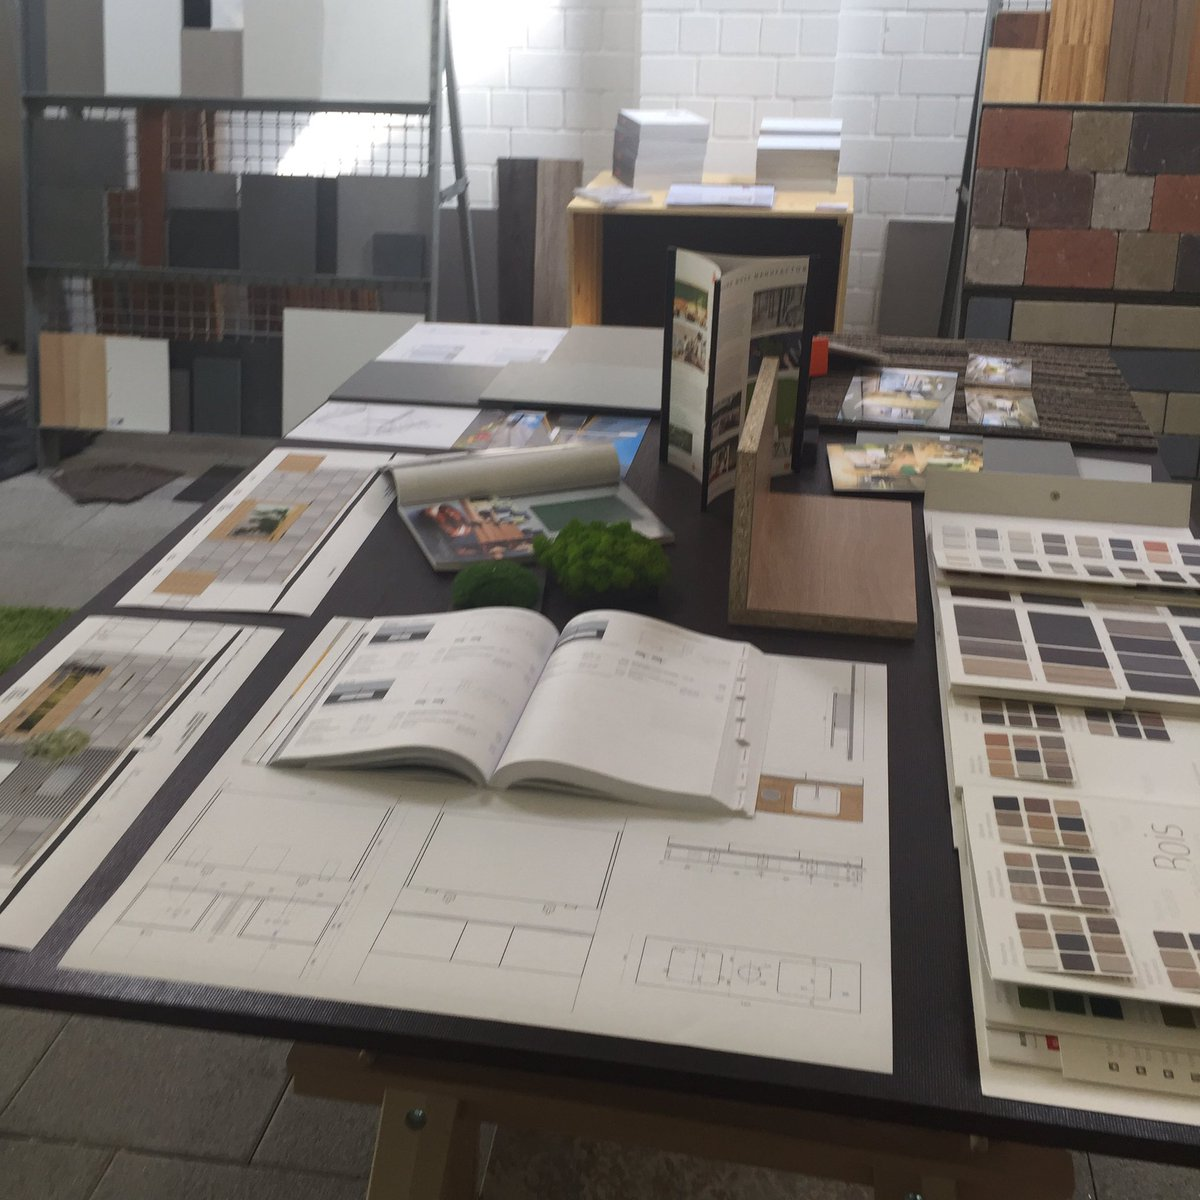 #moodboard for #inspiration - best way to explain a #design #architect #belvederearchitecture #Luxembourg #contern<br>http://pic.twitter.com/BDcDFvIrmT